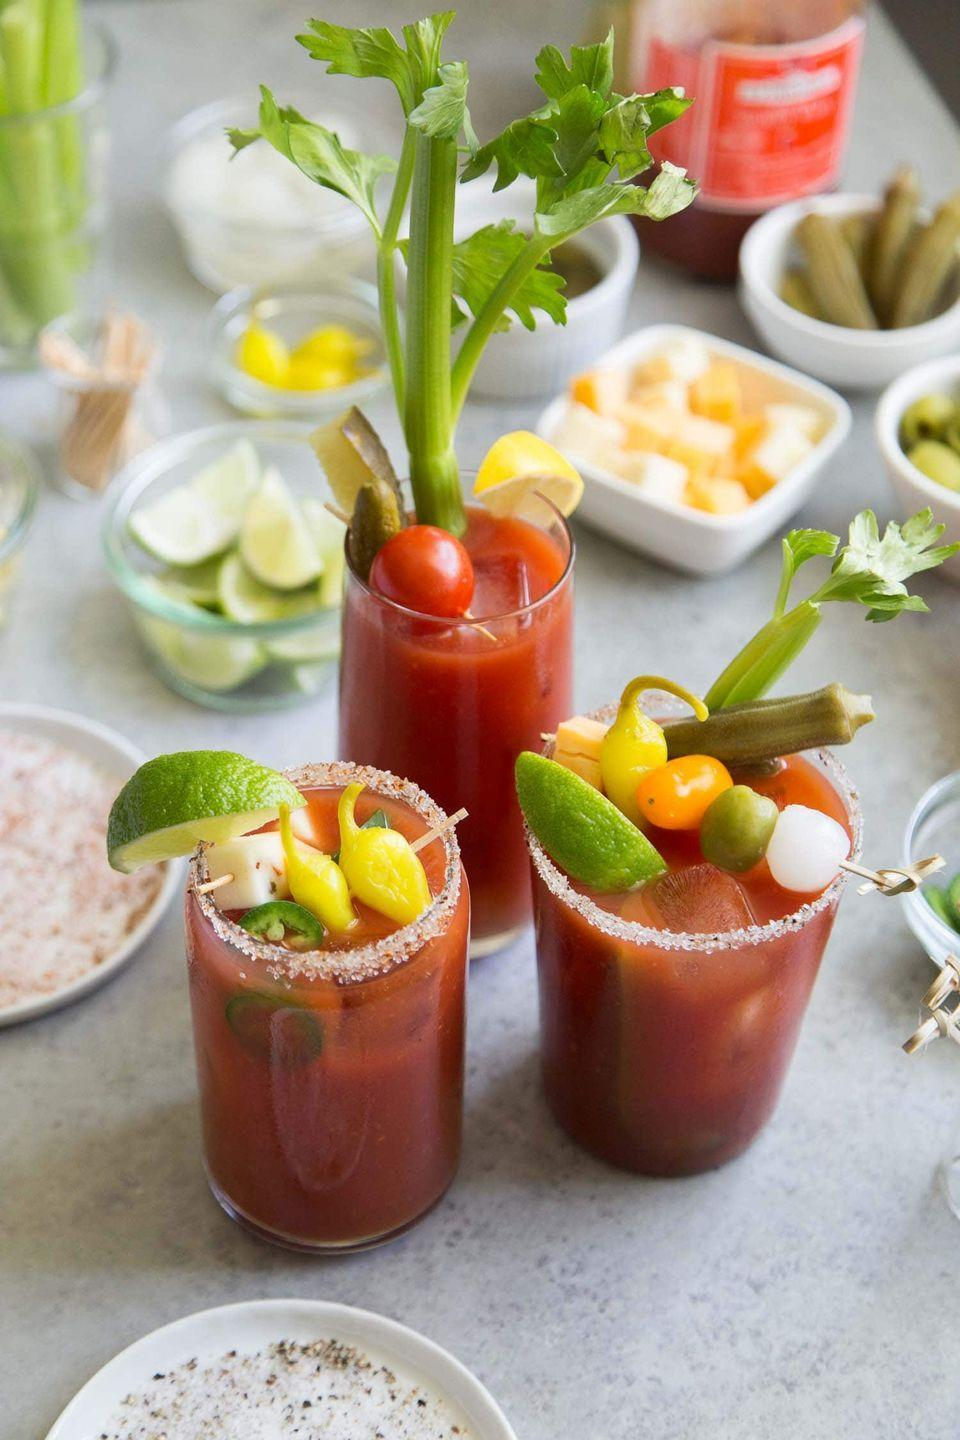 """<p>Or for something a little heartier, serve up bloody Marys three different ways. Your guests get to choose their """"poison:"""" vodka, tequila, or beer. </p><p><em>Get the recipe at <a href=""""https://www.thelittleepicurean.com/2018/12/stirrings-bloody-mary.html"""" rel=""""nofollow noopener"""" target=""""_blank"""" data-ylk=""""slk:The Little Epicurean"""" class=""""link rapid-noclick-resp"""">The Little Epicurean</a>. </em></p>"""